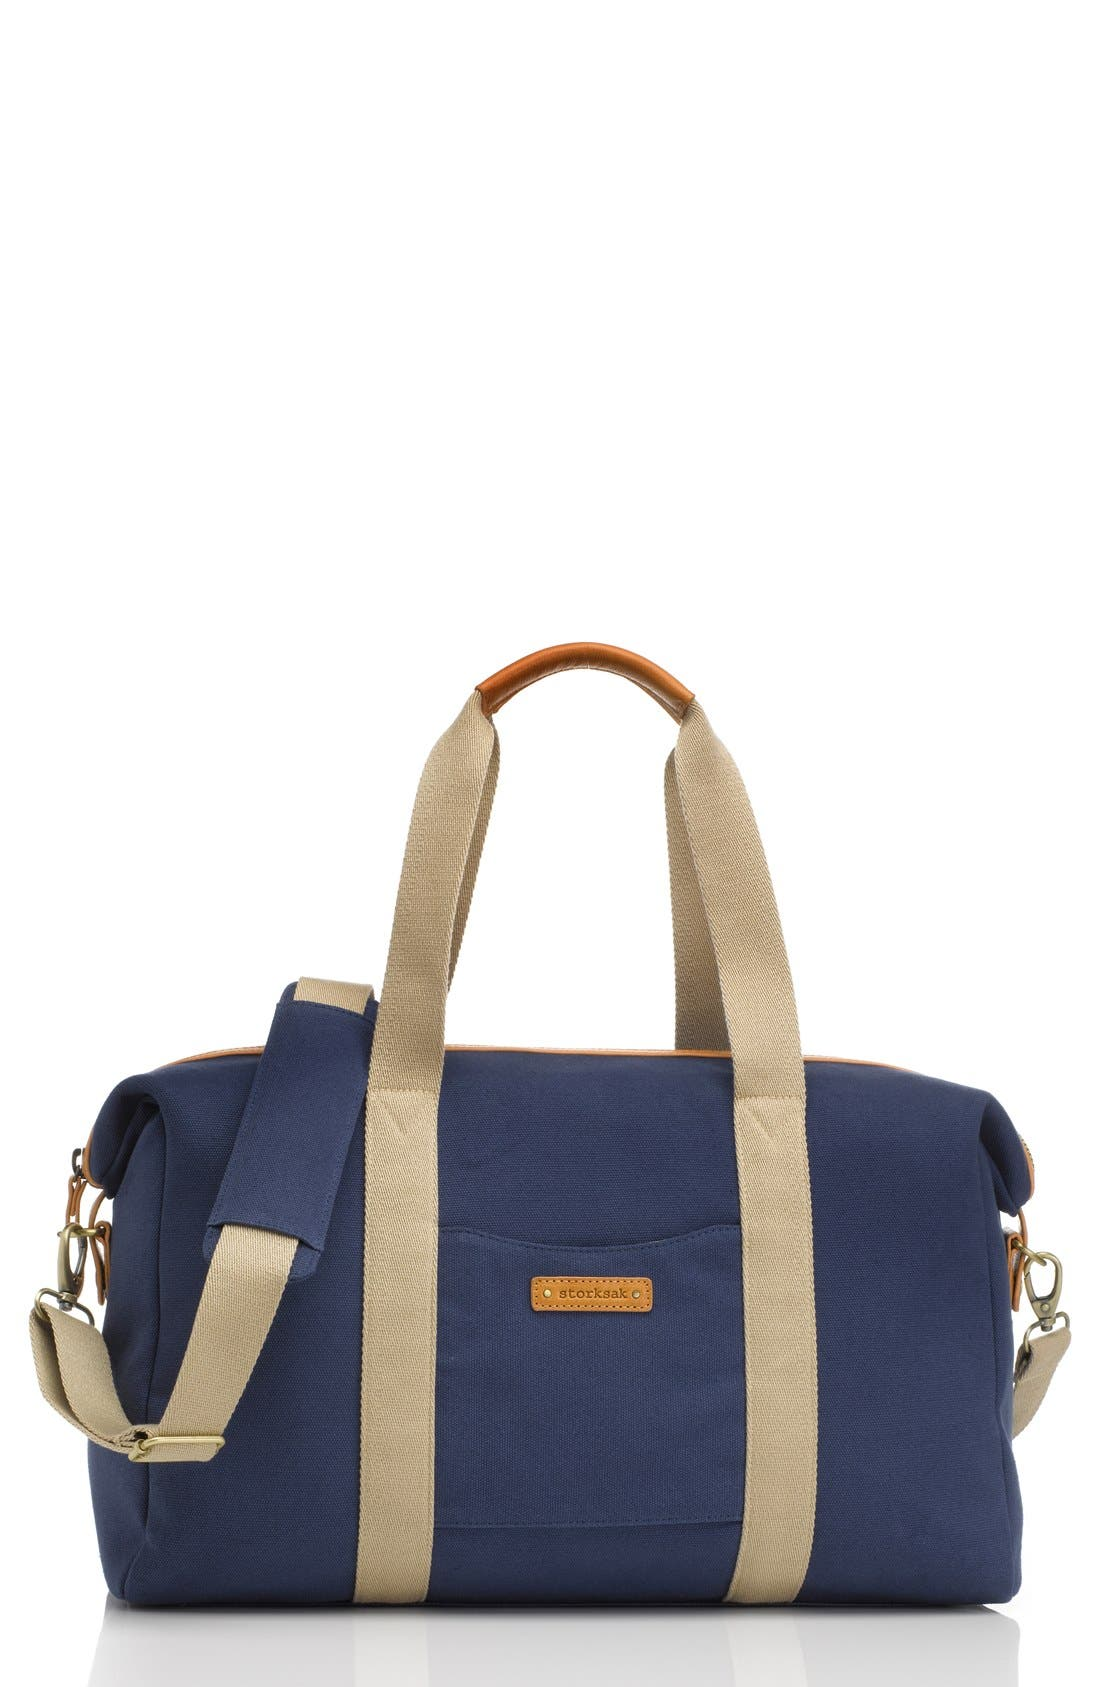 Main Image - Storksak 'Bailey' Weekend Tote